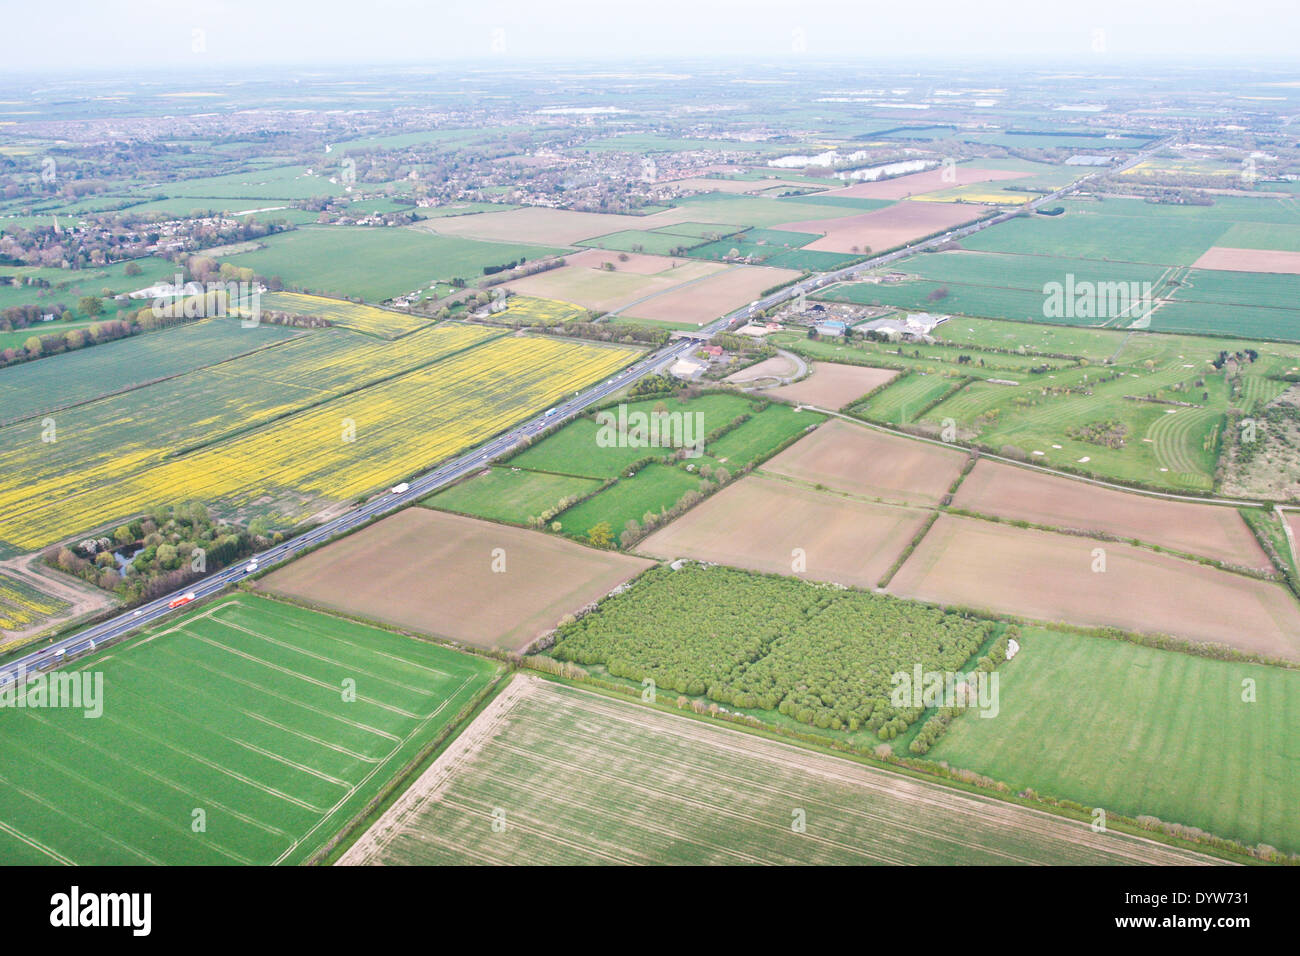 Rural Cambridgeshire from above with A14 trunk road and Hemingford Grey in the centre of the image - Stock Image